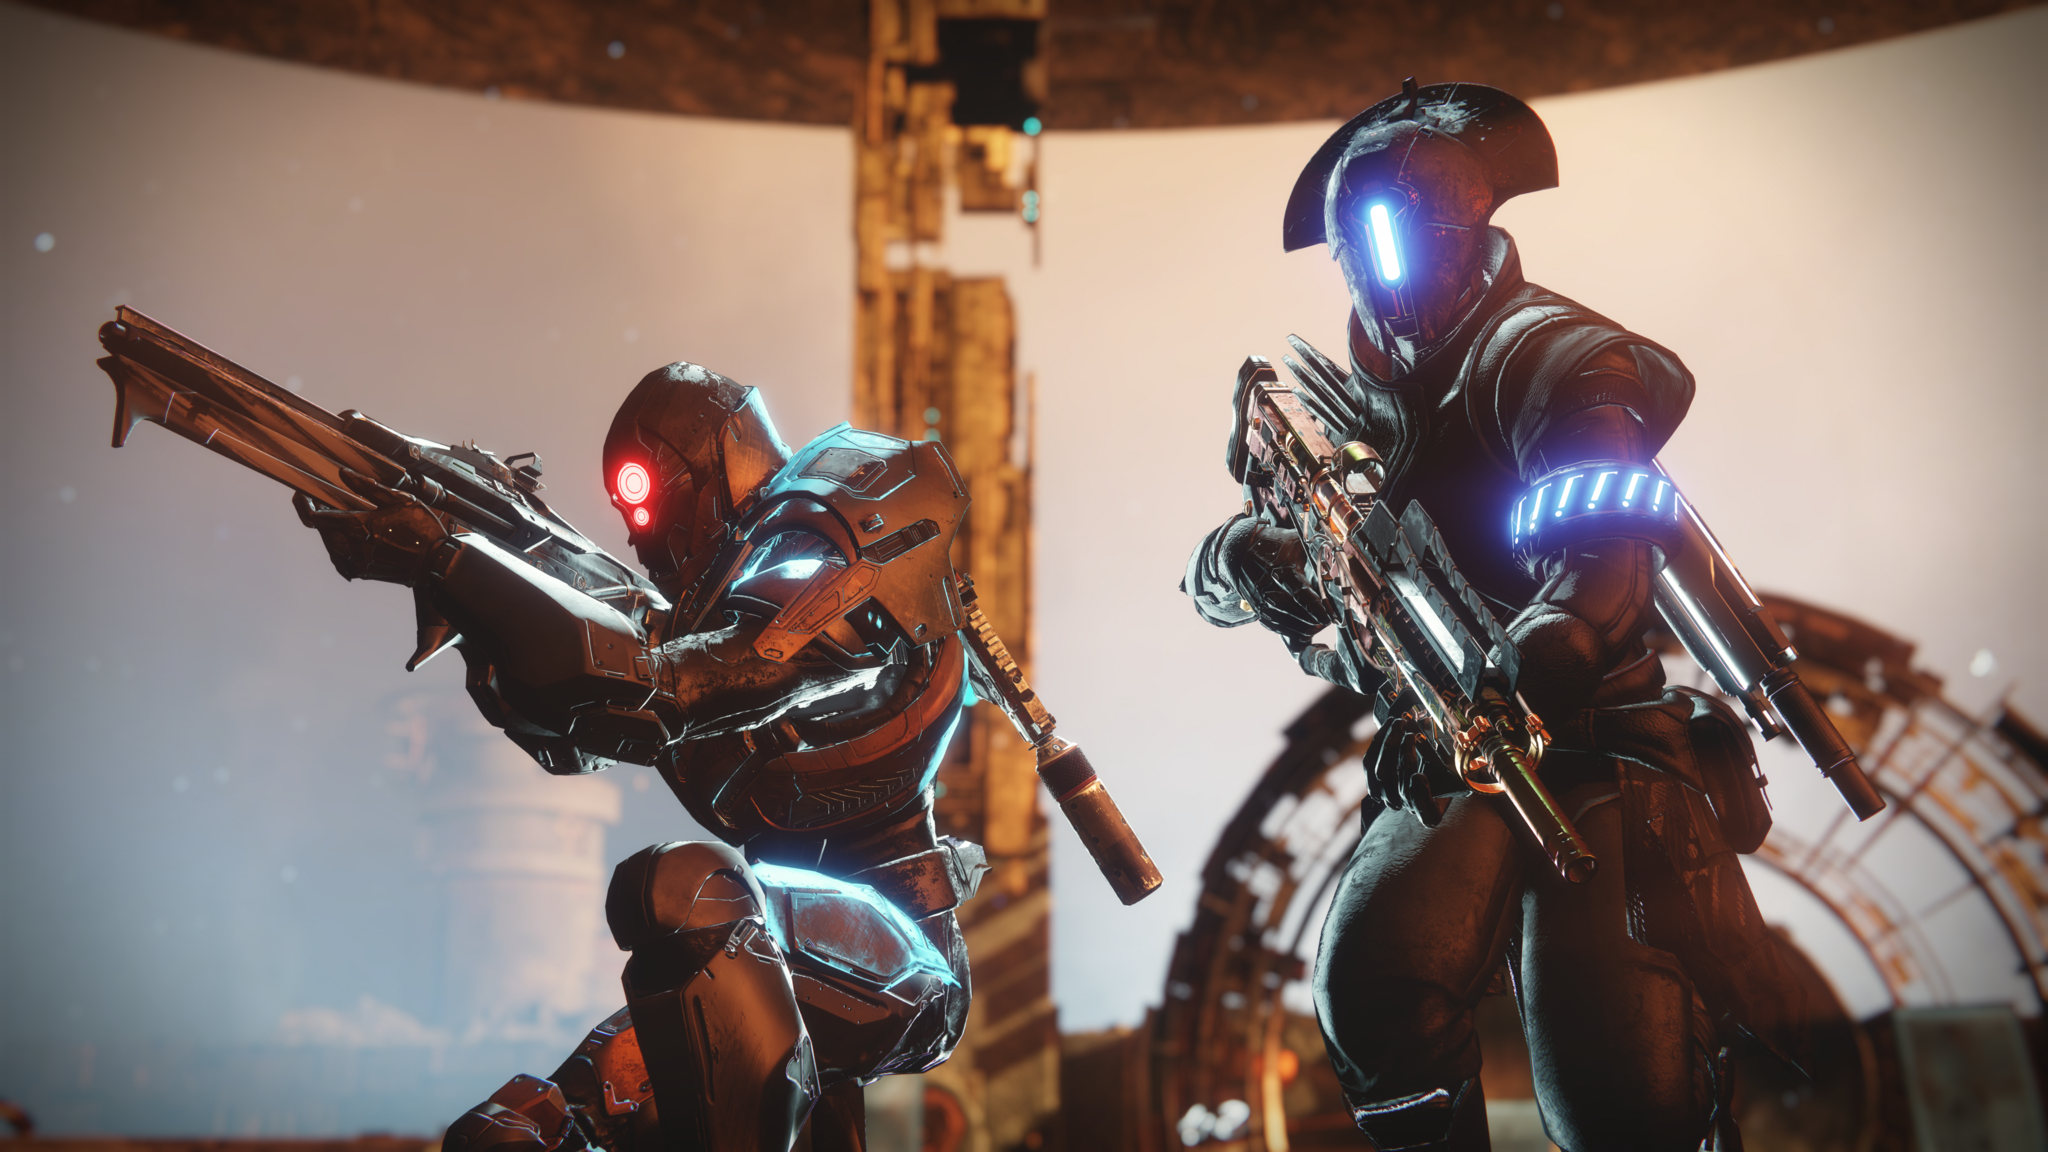 Bungie announces free trial for Destiny 2, starts tomorrow